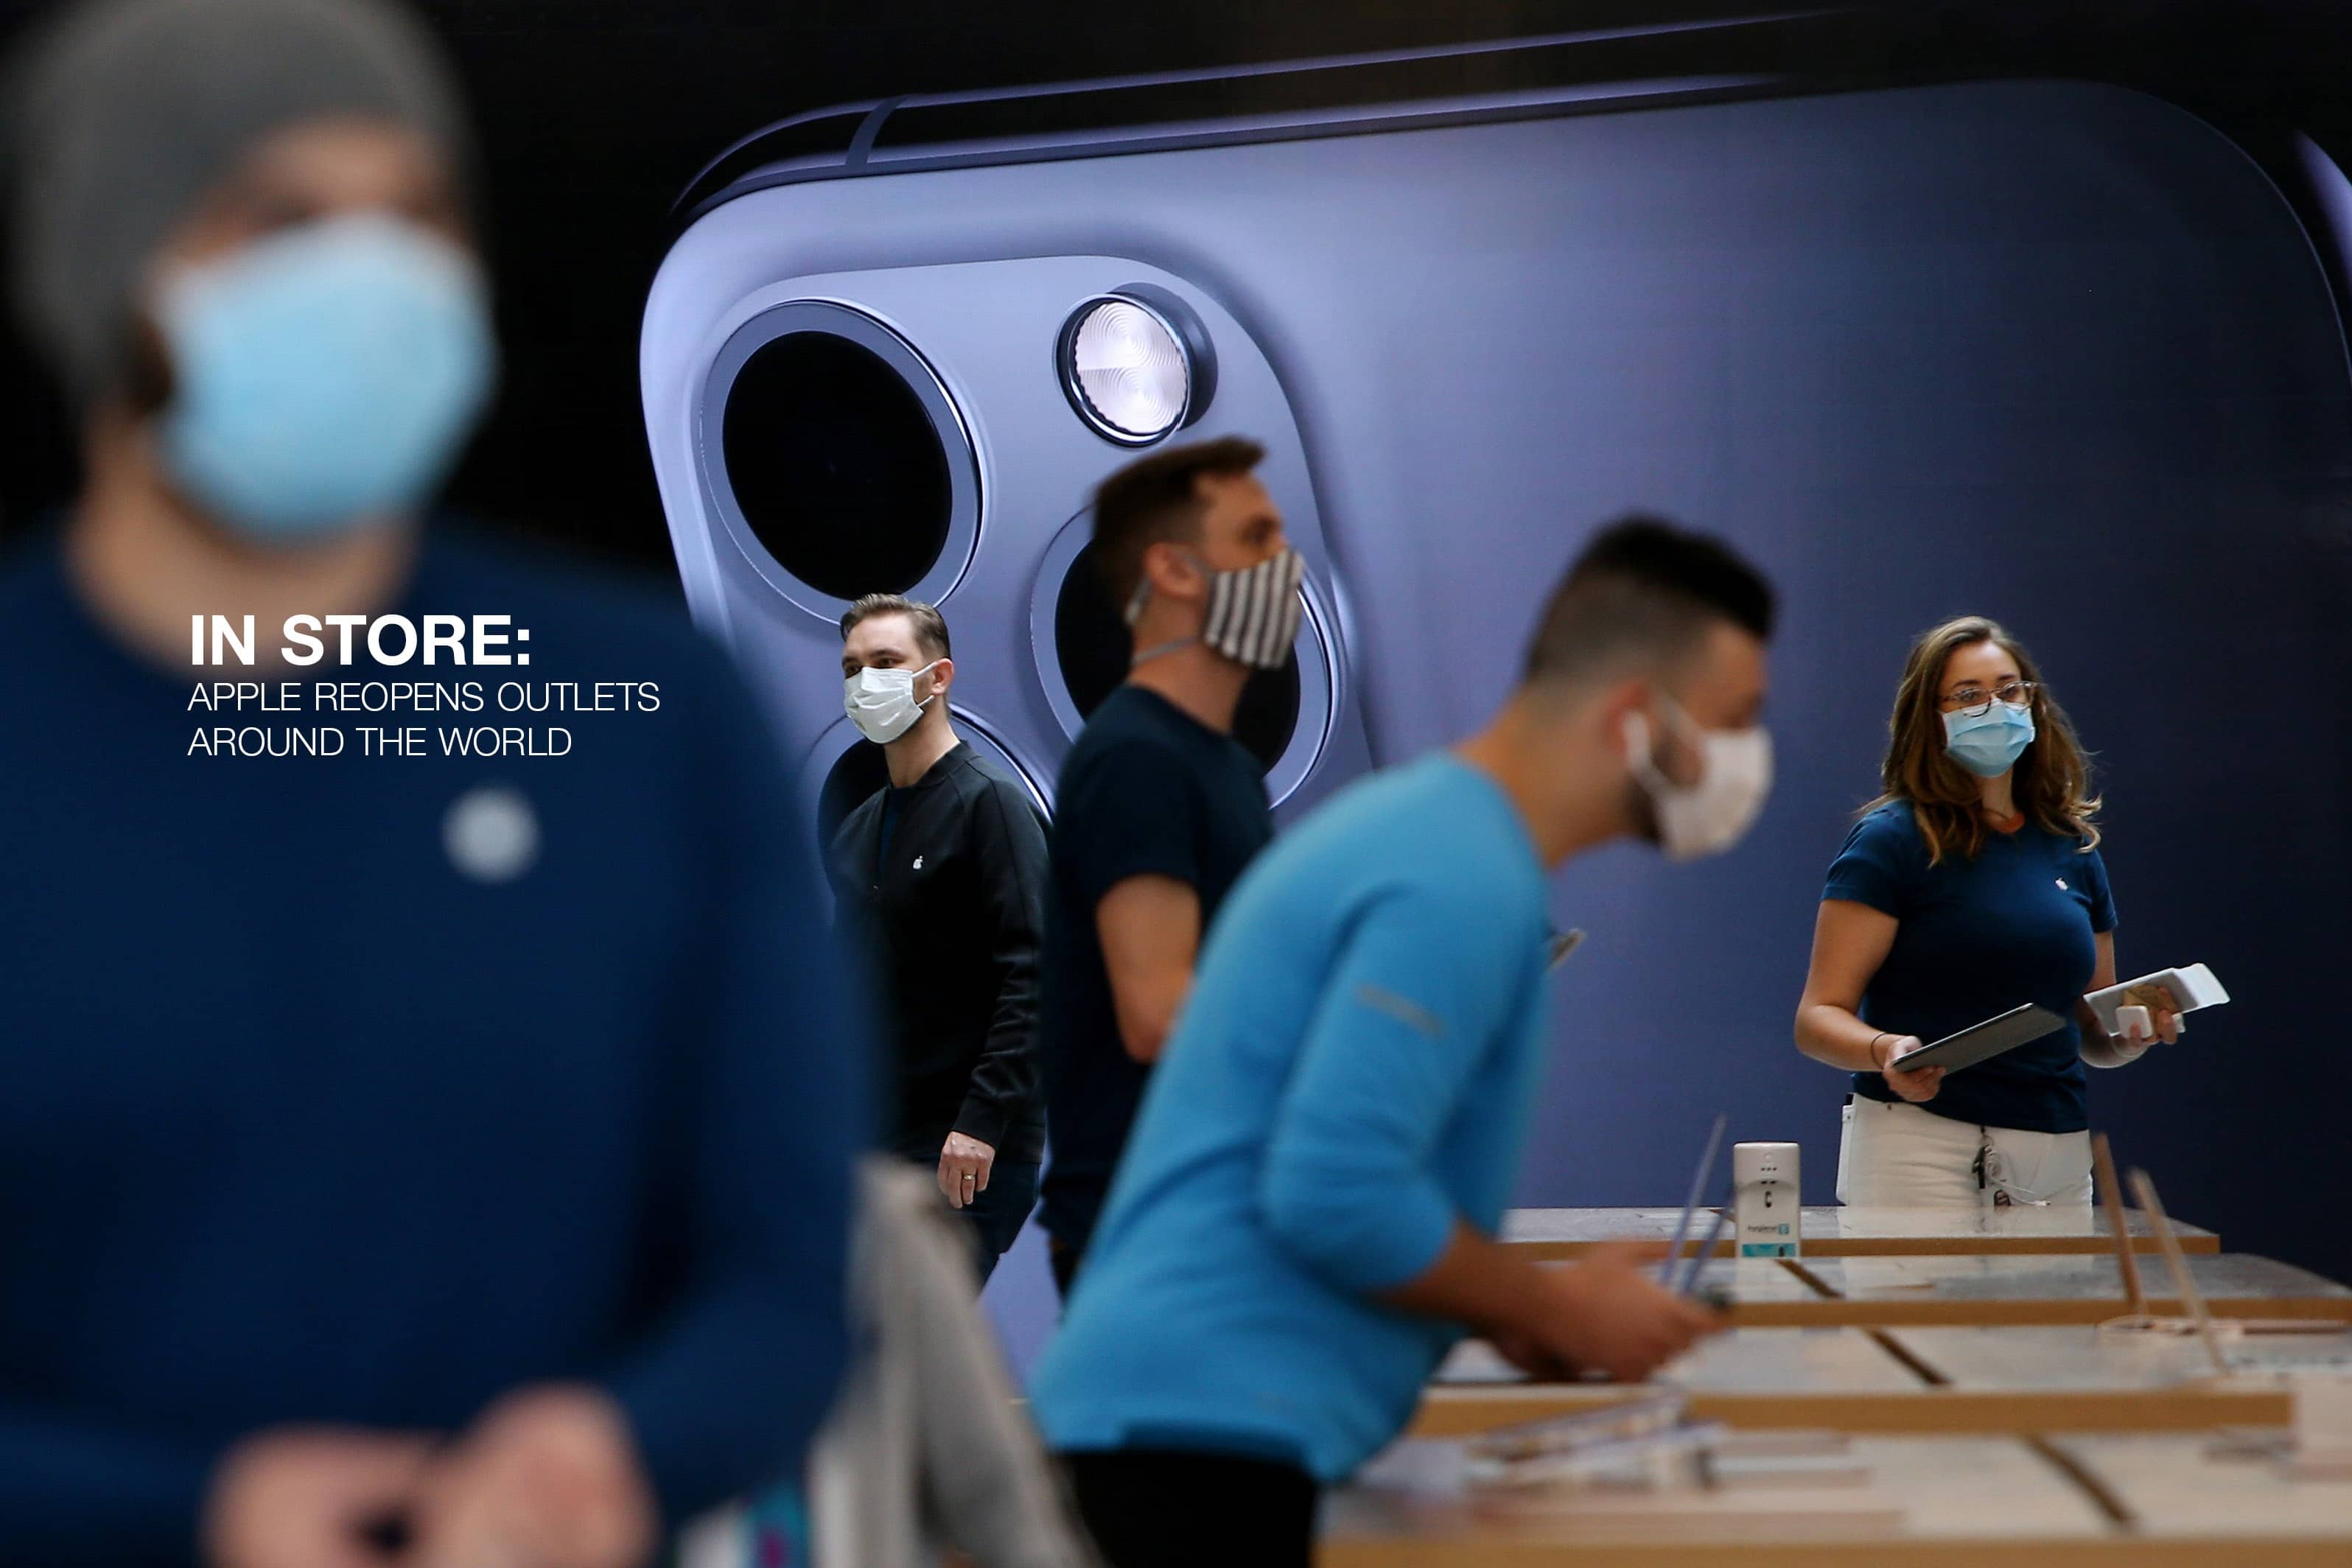 IN STORE: APPLE REOPENS OUTLETS AROUND THE WORLD